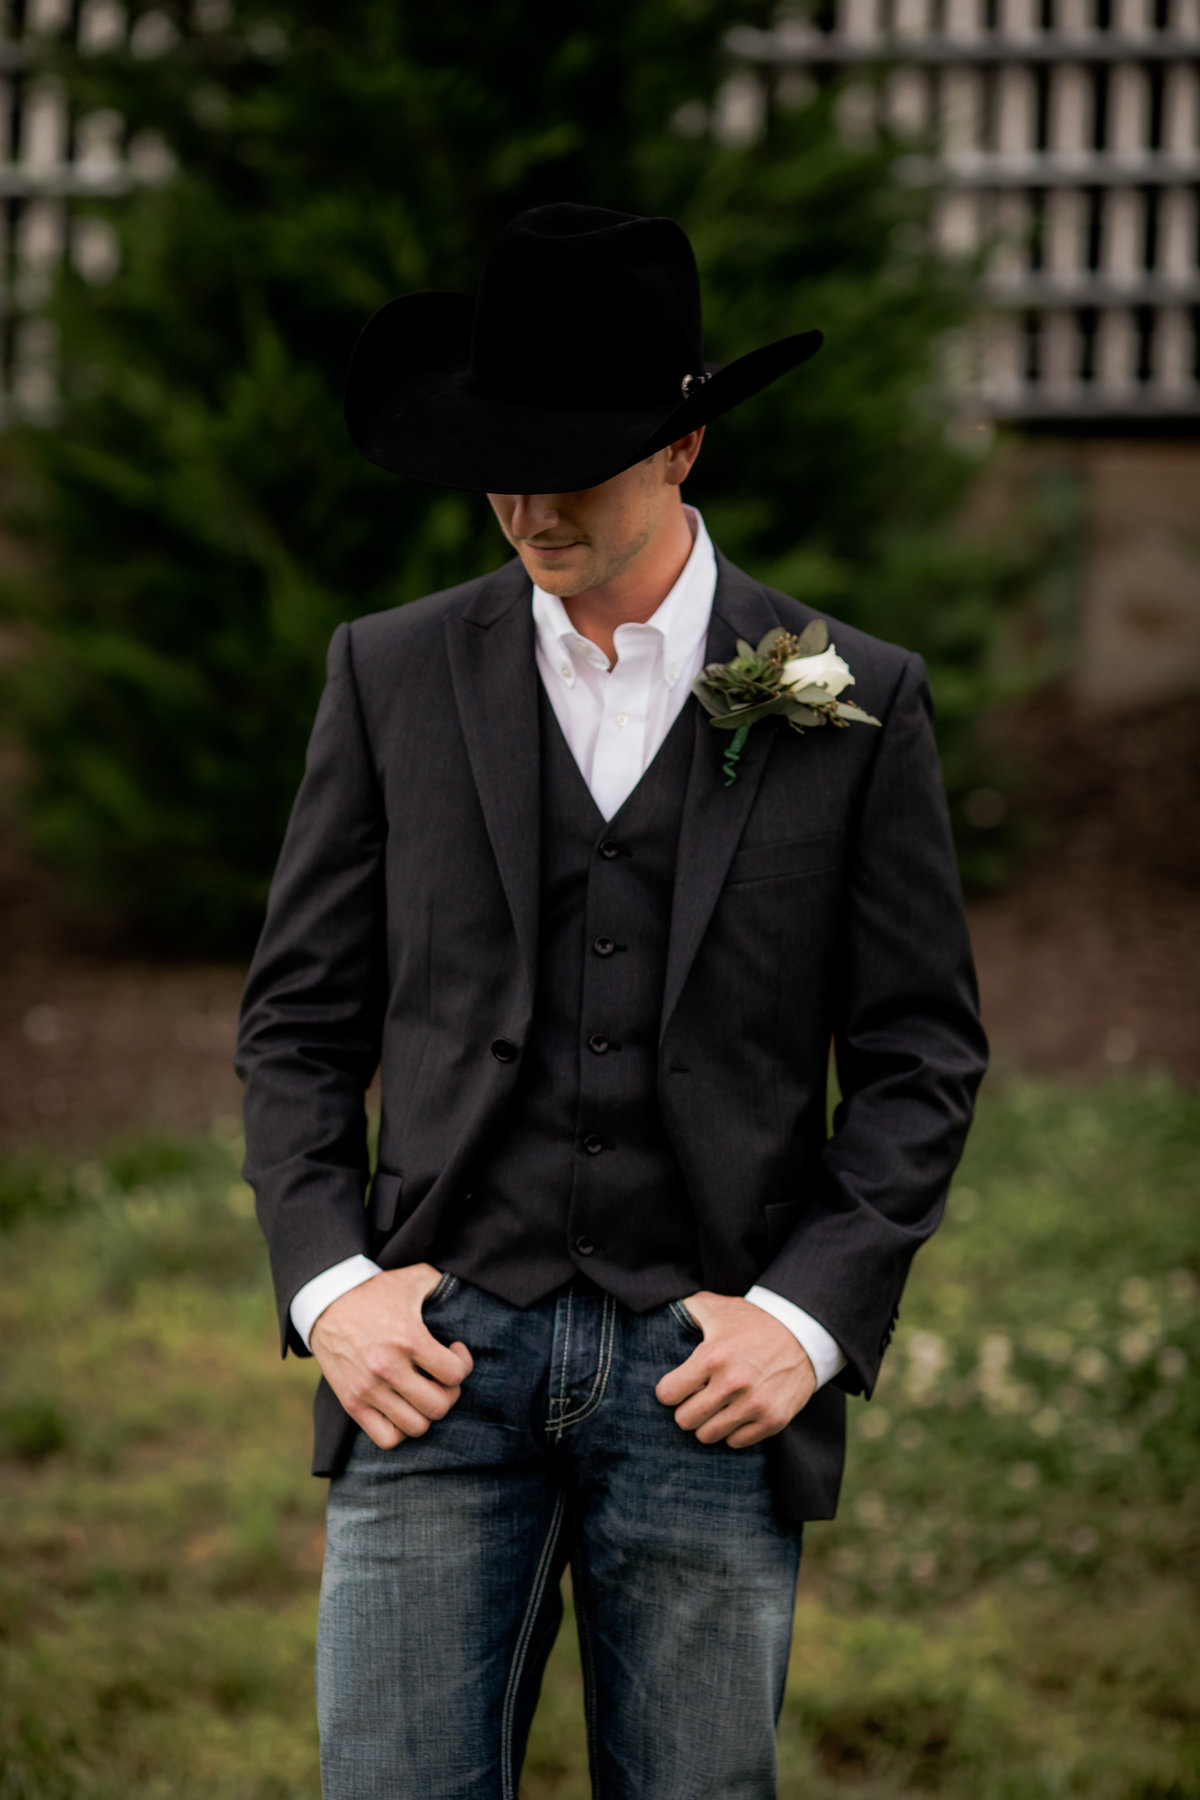 Nsshville Bride - Nashville Brides - The Hayloft Weddings - Tennessee Brides - Kentucky Brides - Southern Brides - Cowboys Wife - Cowboys Bride - Ranch Weddings - Cowboys and Belles057